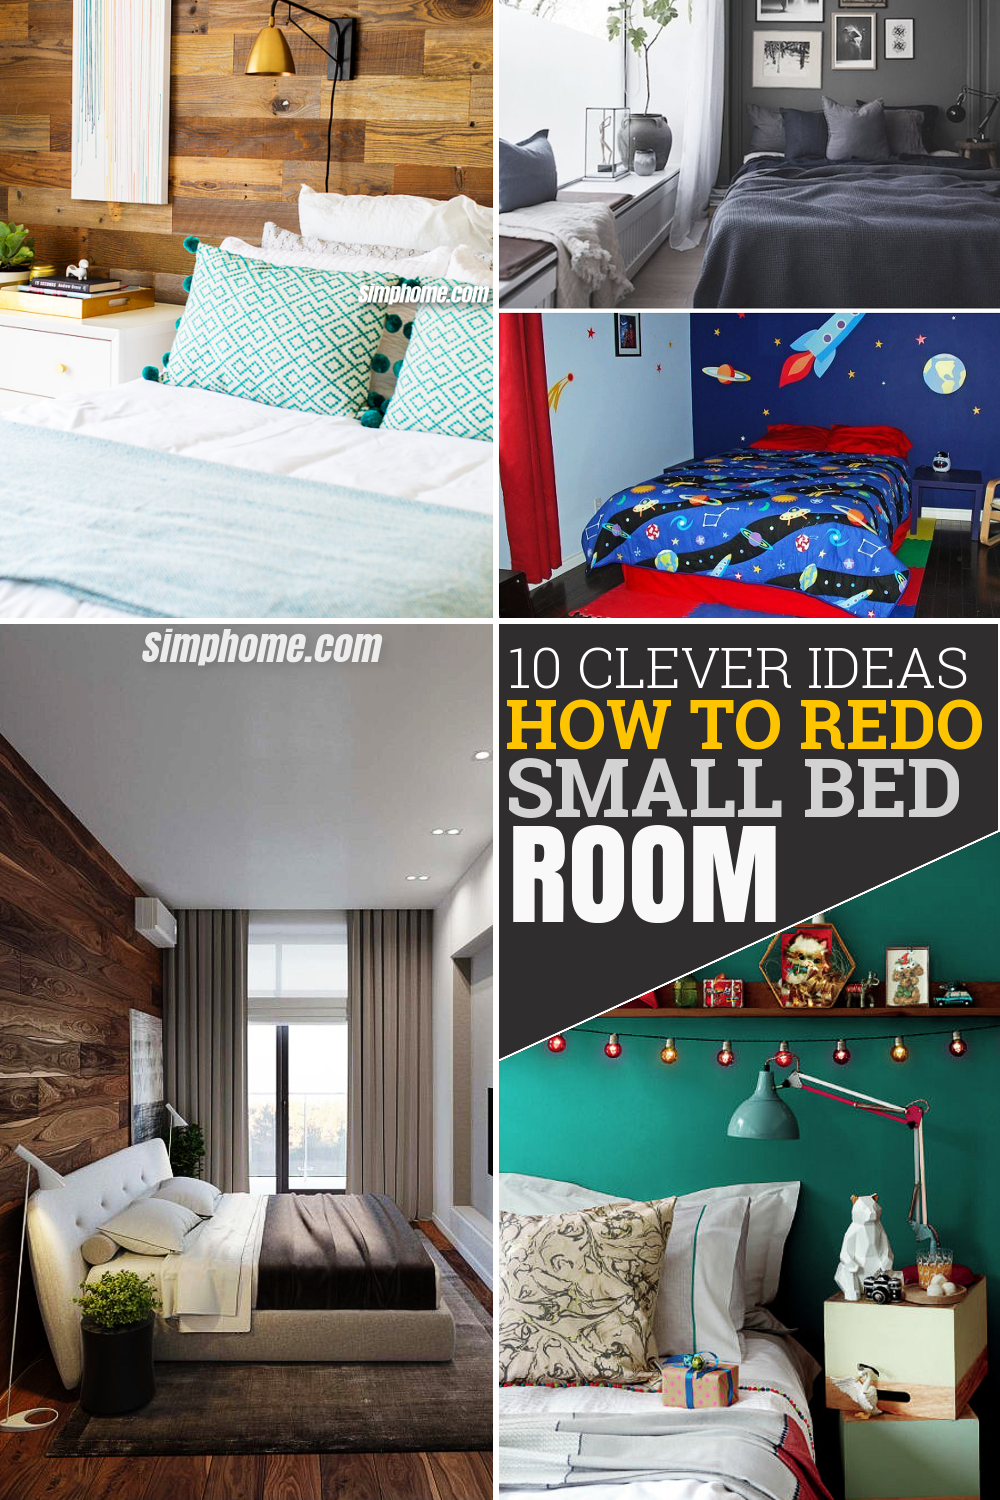 10 Clever Ideas How To Redo A Small Bedroom Simphome Small Bedroom Small Bedroom Organization Small Bedroom Storage